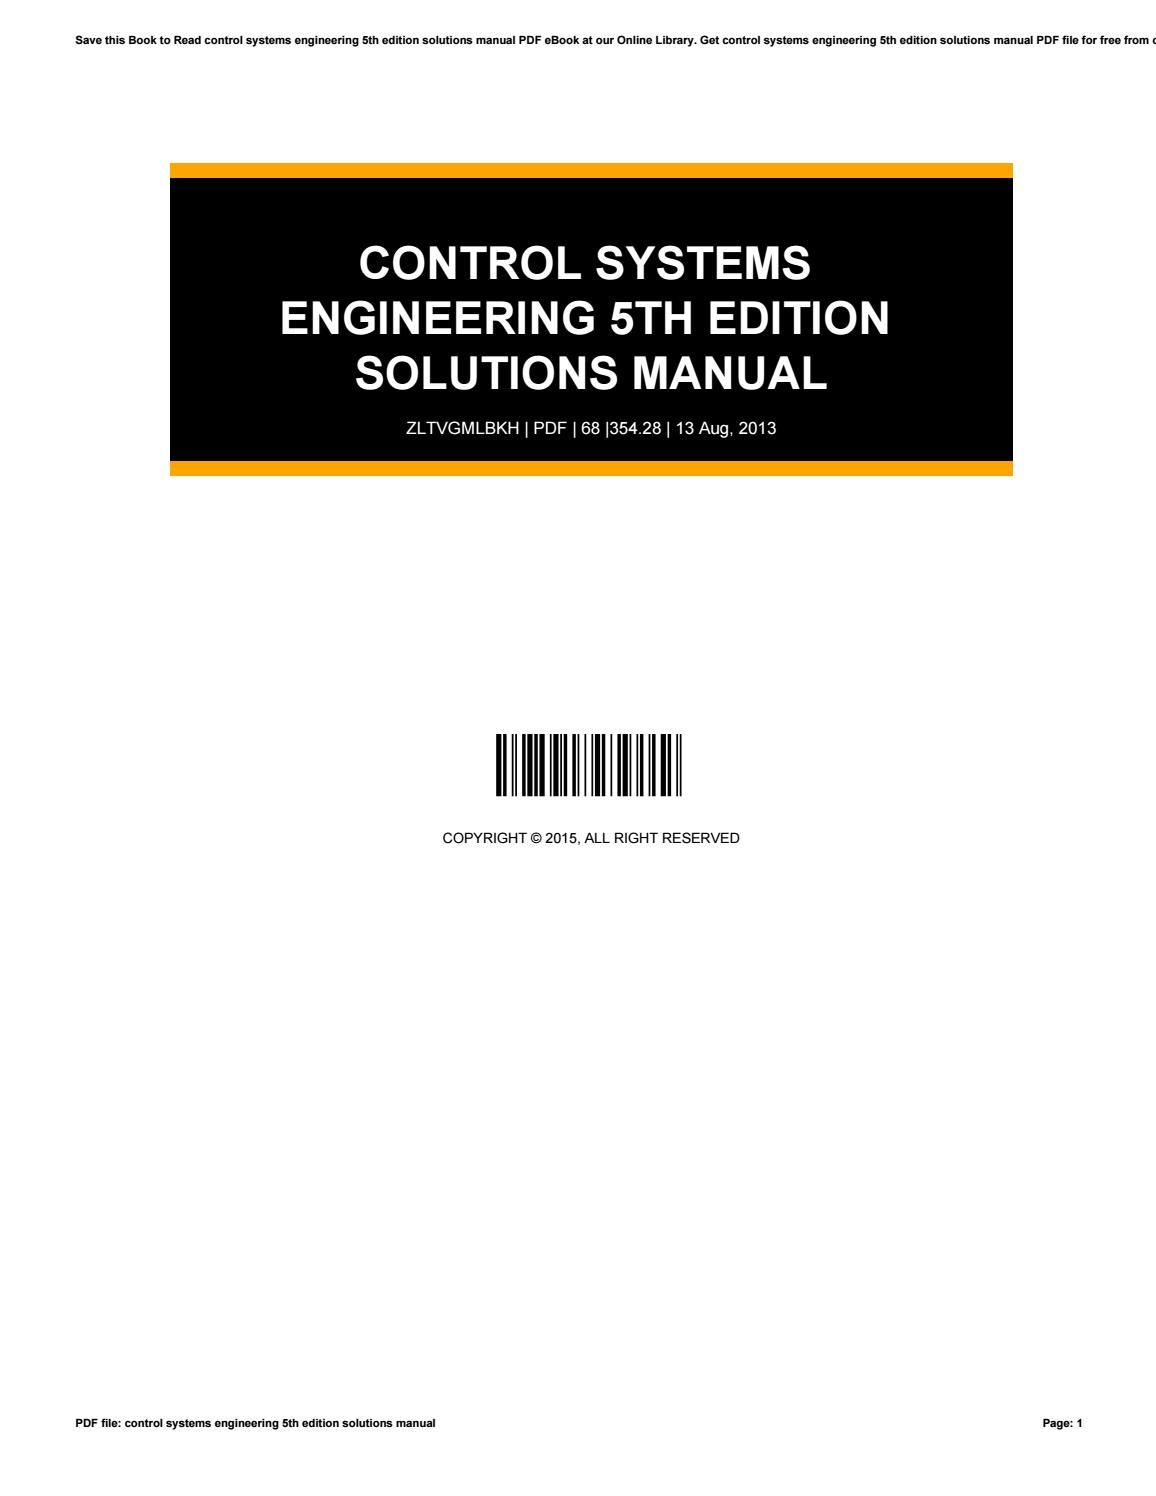 Control systems engineering 5th edition solutions manual by WadeKing3844 -  issuu